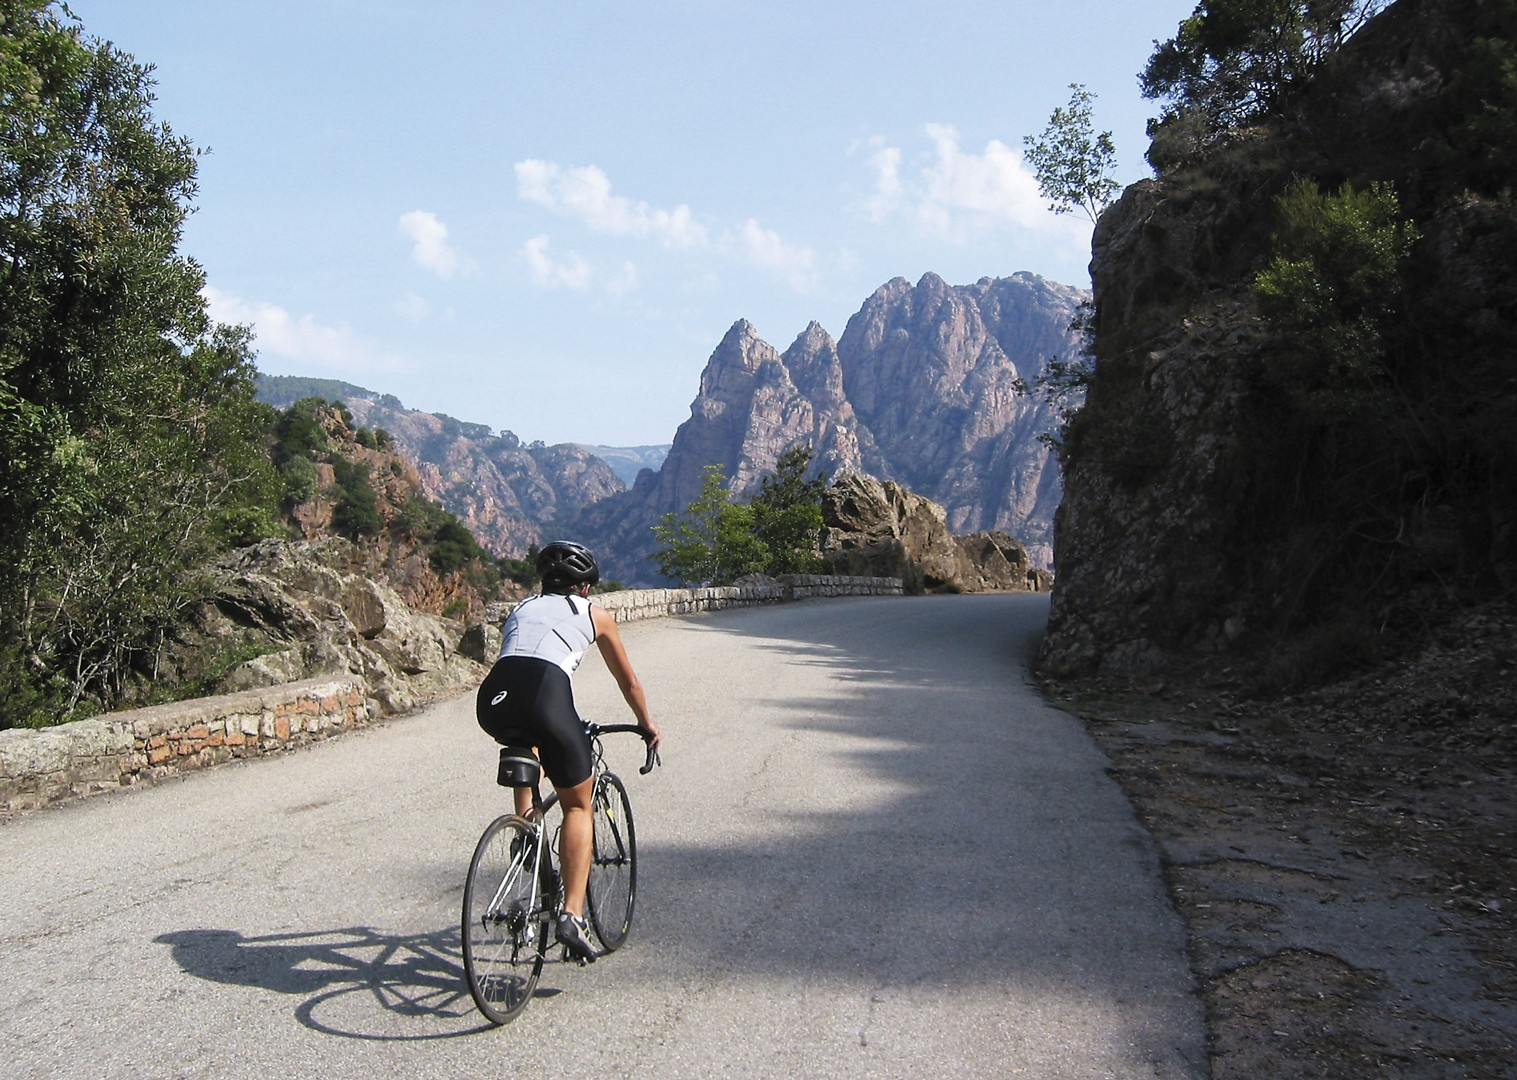 route-des-artisans-corsica-guided-road-cycling-holiday-the-beautiful-isle.jpg - France - Corsica - The Beautiful Isle - Guided Road Cycling Holiday - Road Cycling